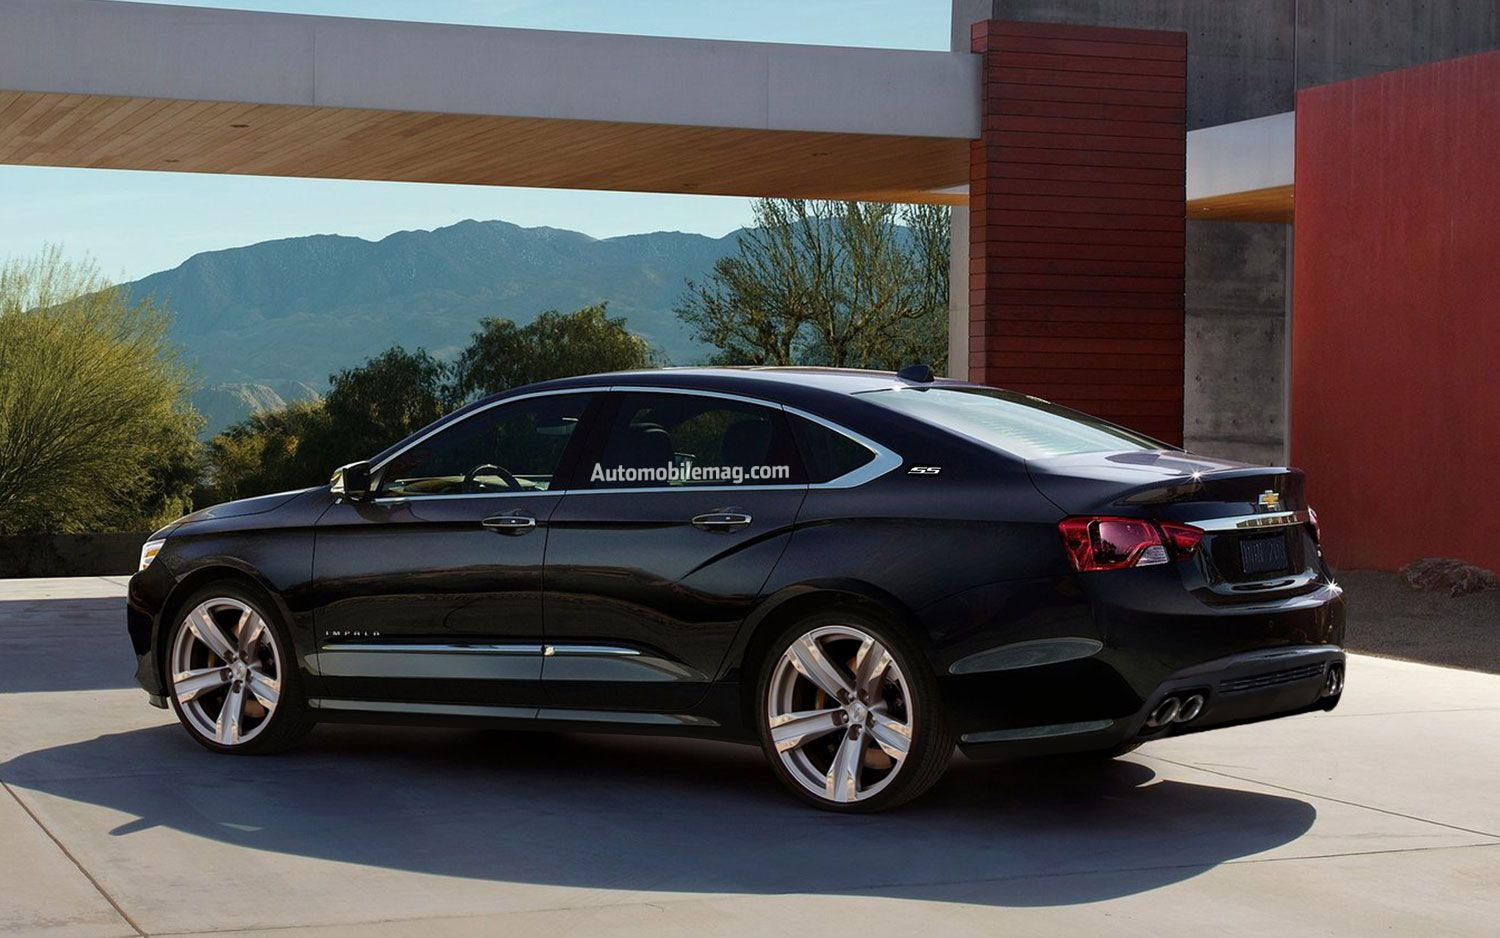 hight resolution of chevy impala ss rendering rear amag photo on april 23 2012